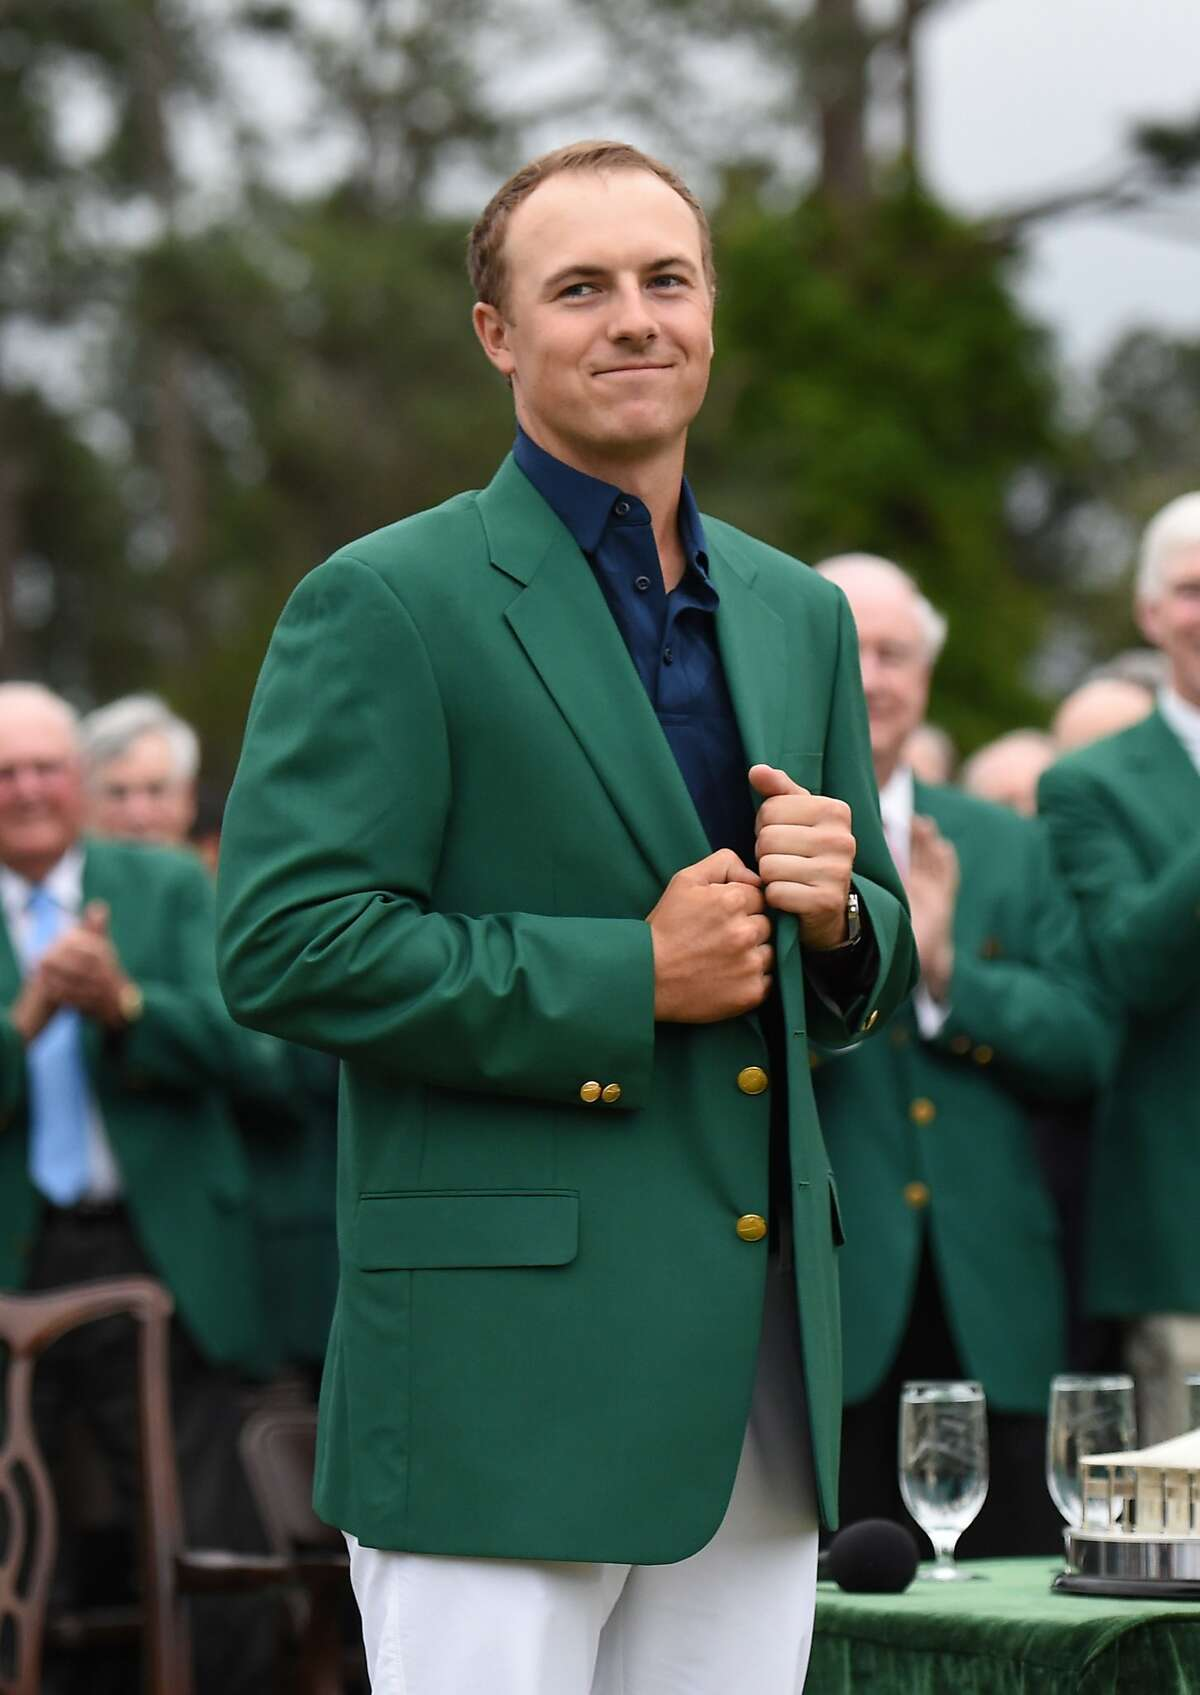 Jordan Spieth dons the Green Jacket as the 2015 Masters Champion at the 79th Masters Golf Tournament. Click to see his new Dallas home.